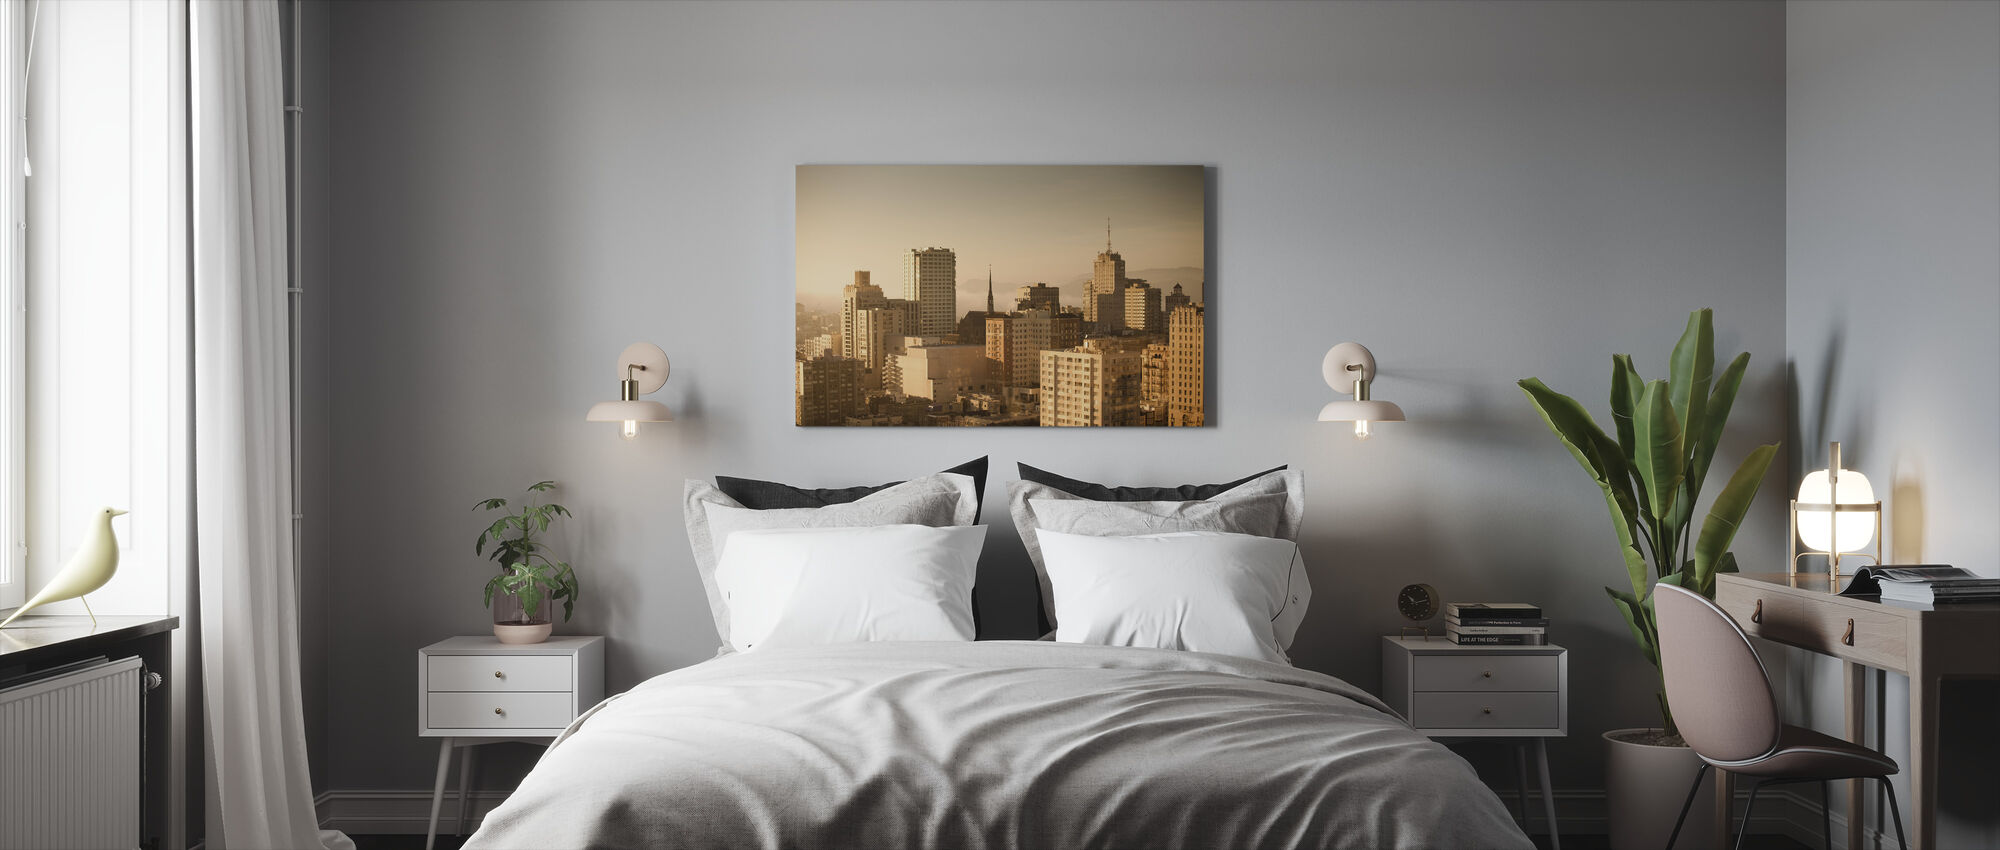 Sprankelende San Francisco - Canvas print - Slaapkamer